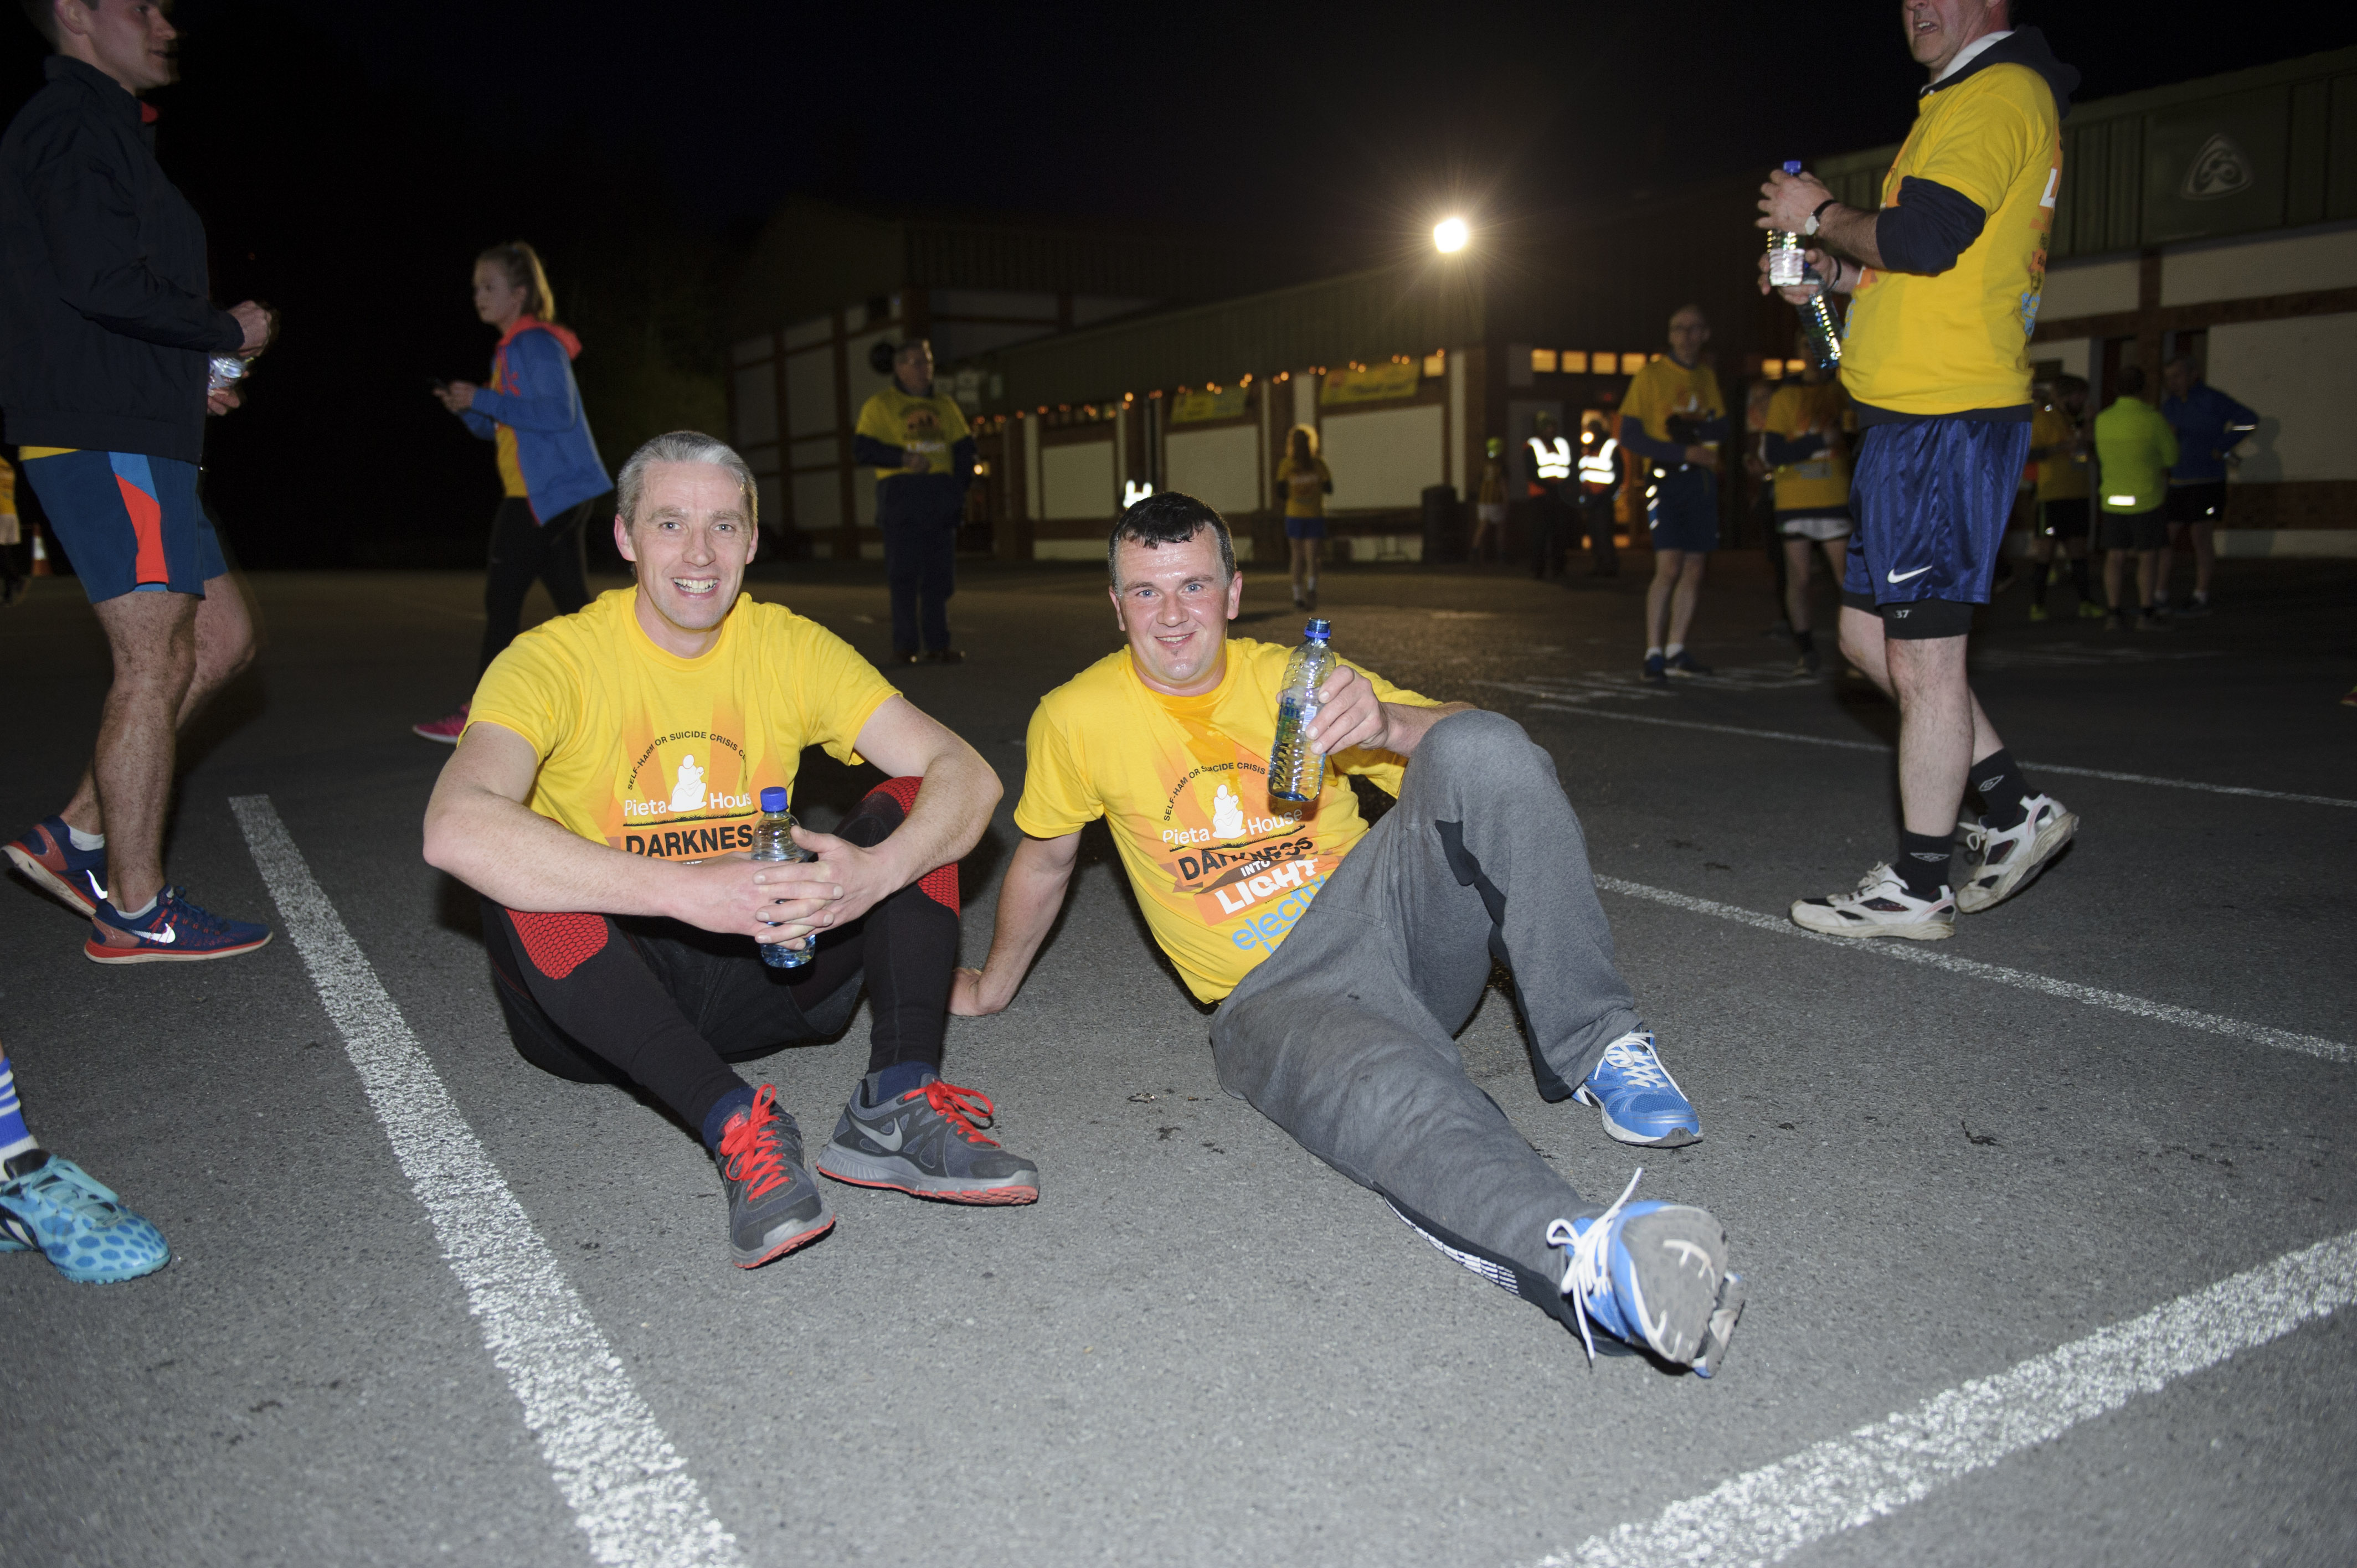 Paul Sherry and Mark Treanor, taking a rest after finishing the Darkness Into Light 5k for Pieta House. ©Rory Geary/The Northern Standard